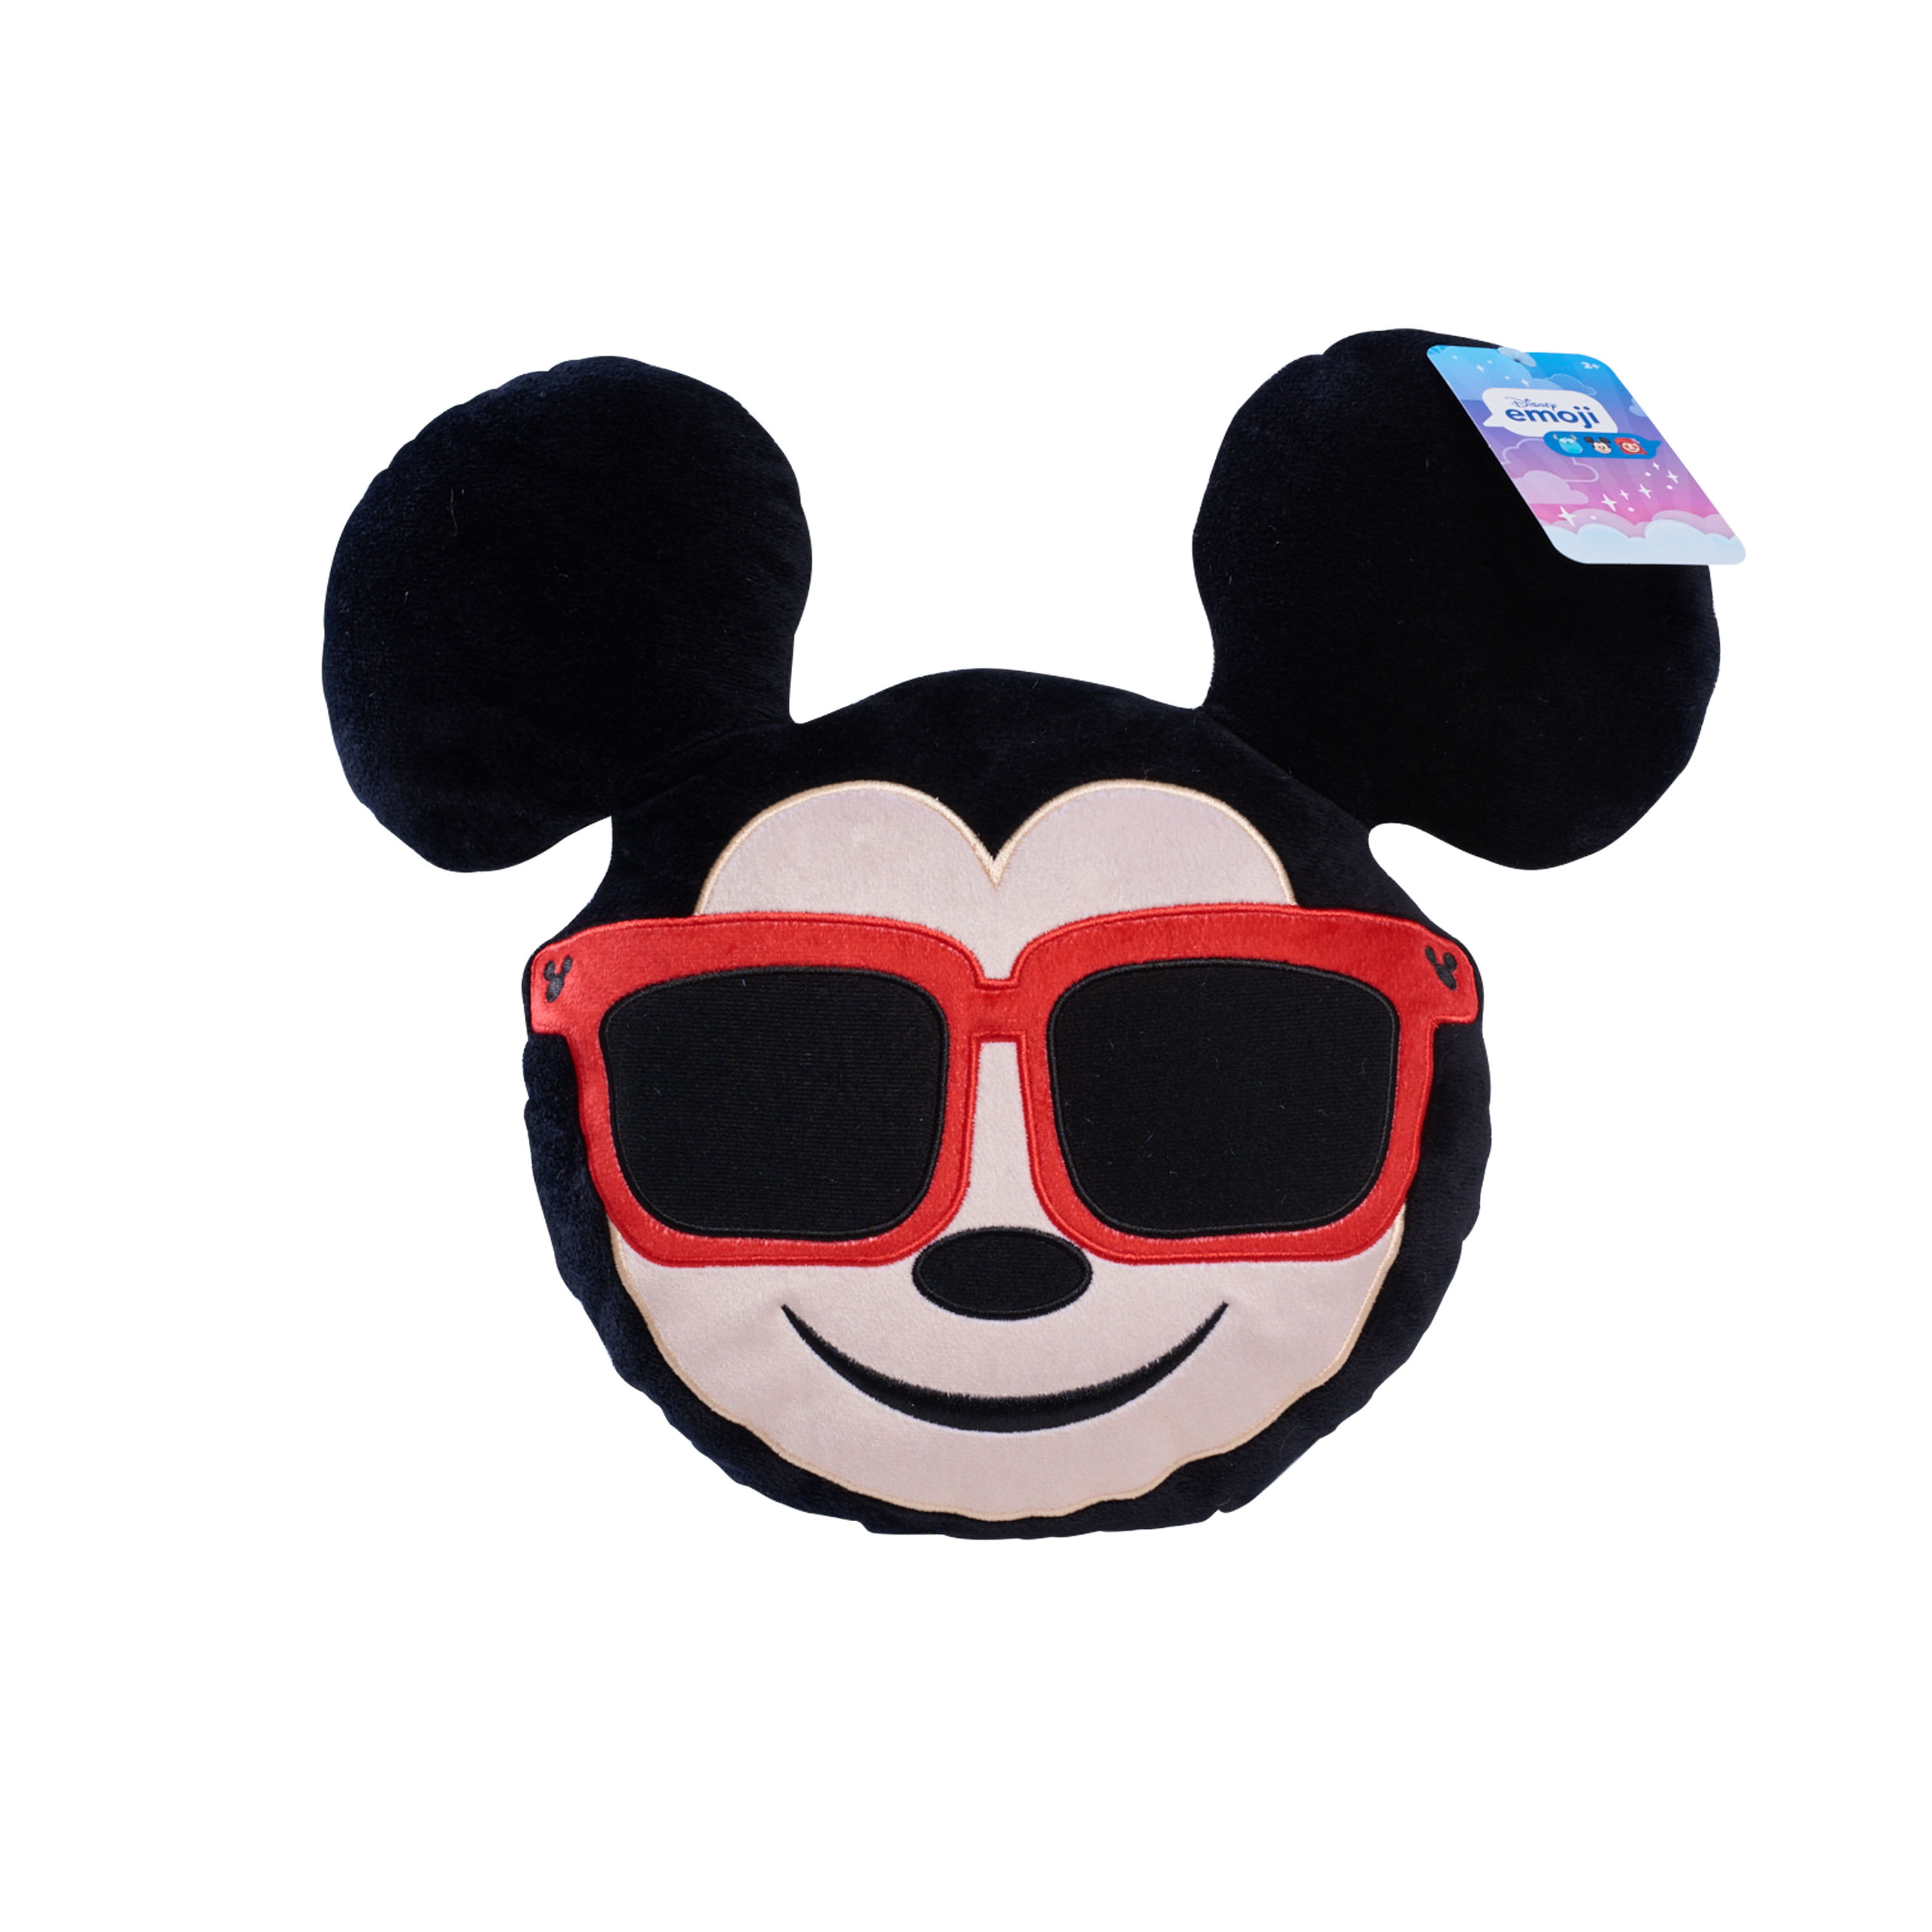 "Disney Emoji Mickey Mouse with Sunglasses 13"" Plush by Just Play"